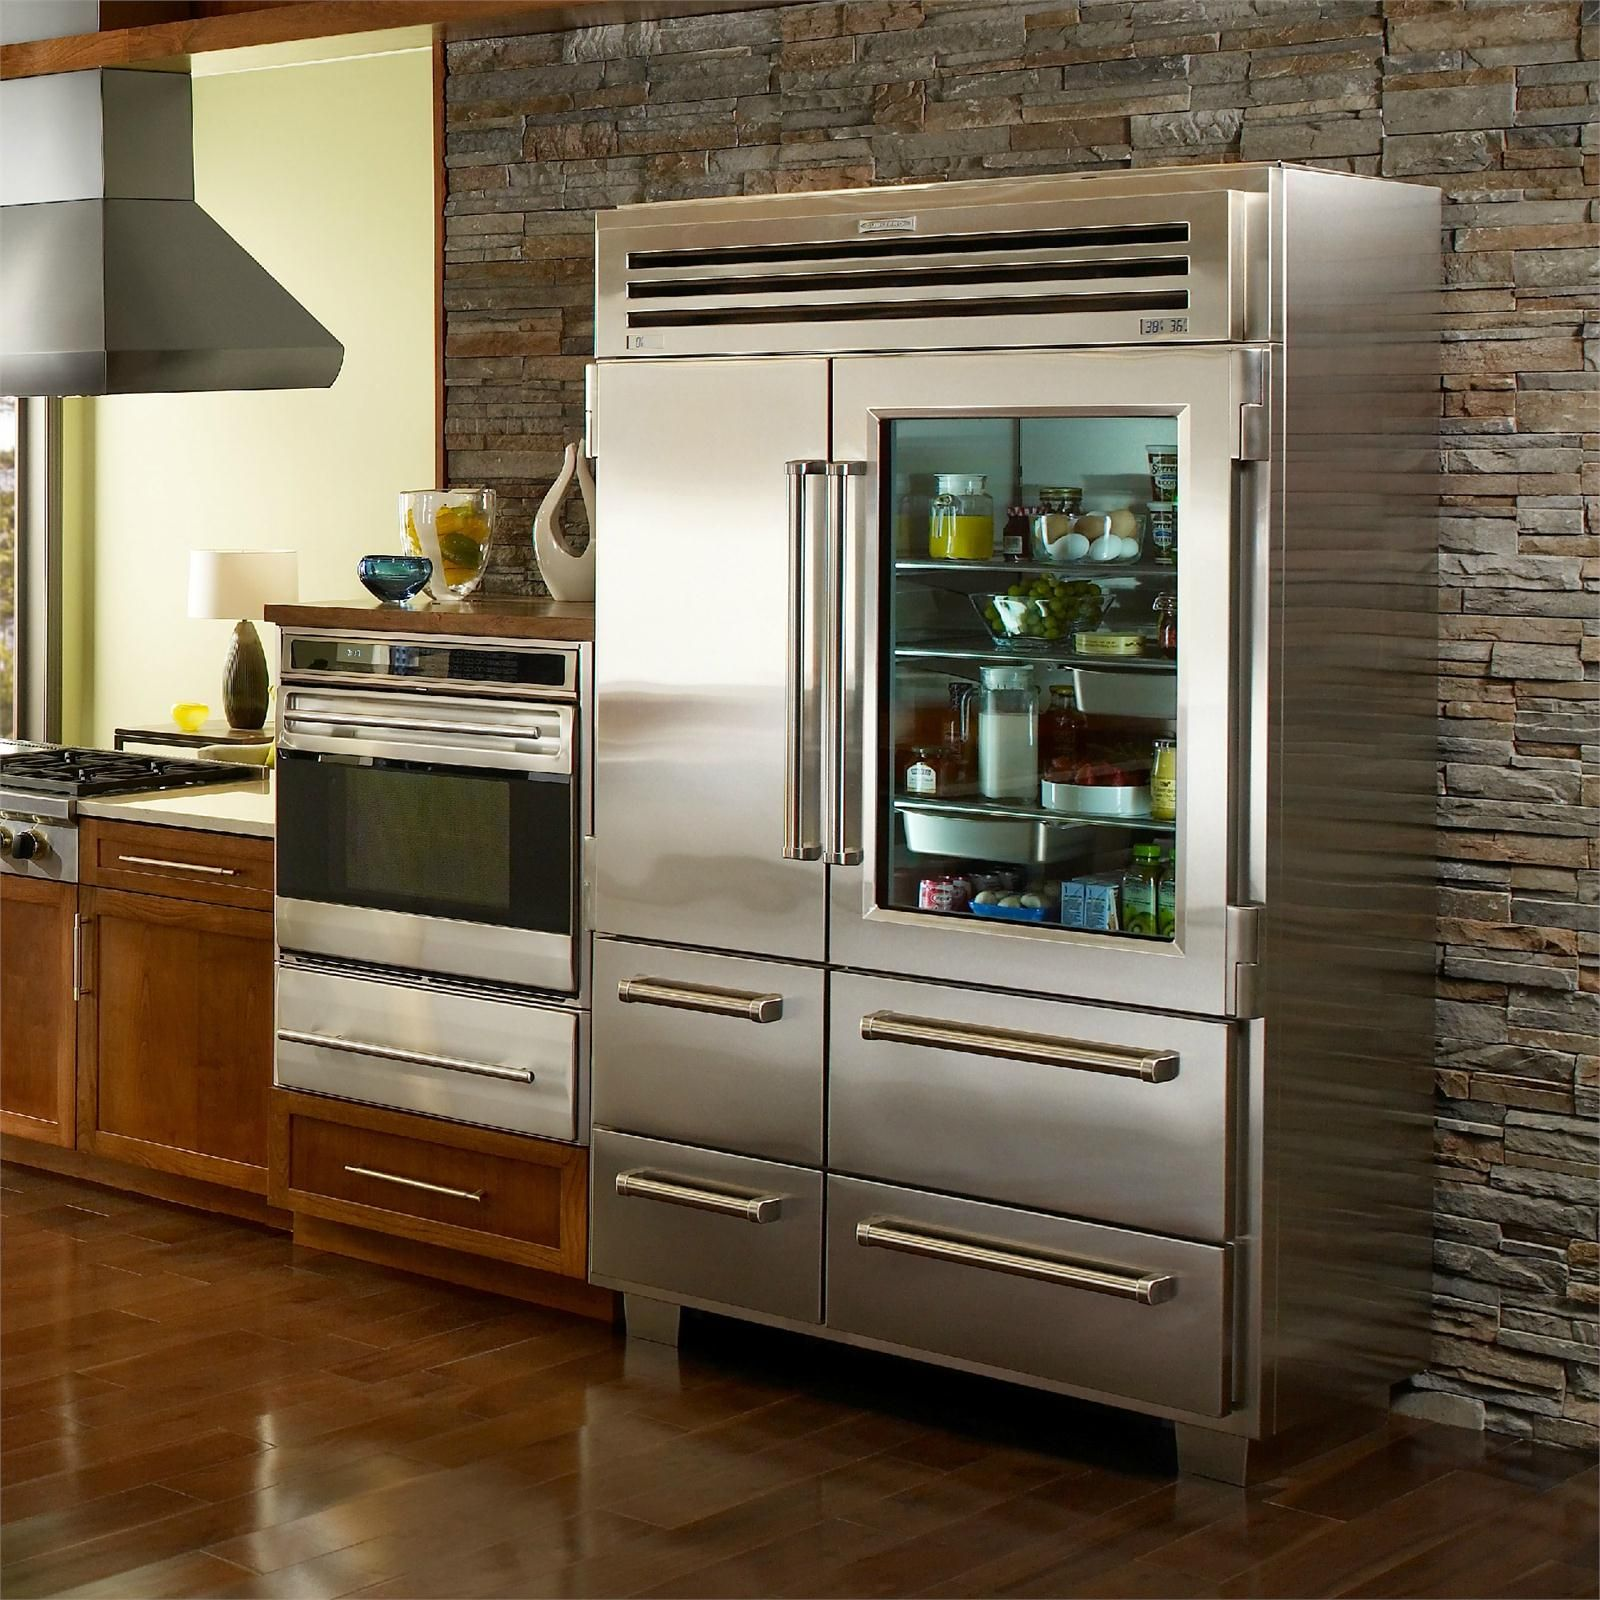 Exceptionnel Born Of 100% Steel (and A Good Bit Of Bravado), The Sub Zero PRO 48 With Glass  Door Refrigerator/Freezer Is A True Masterpiece Of Preservation.